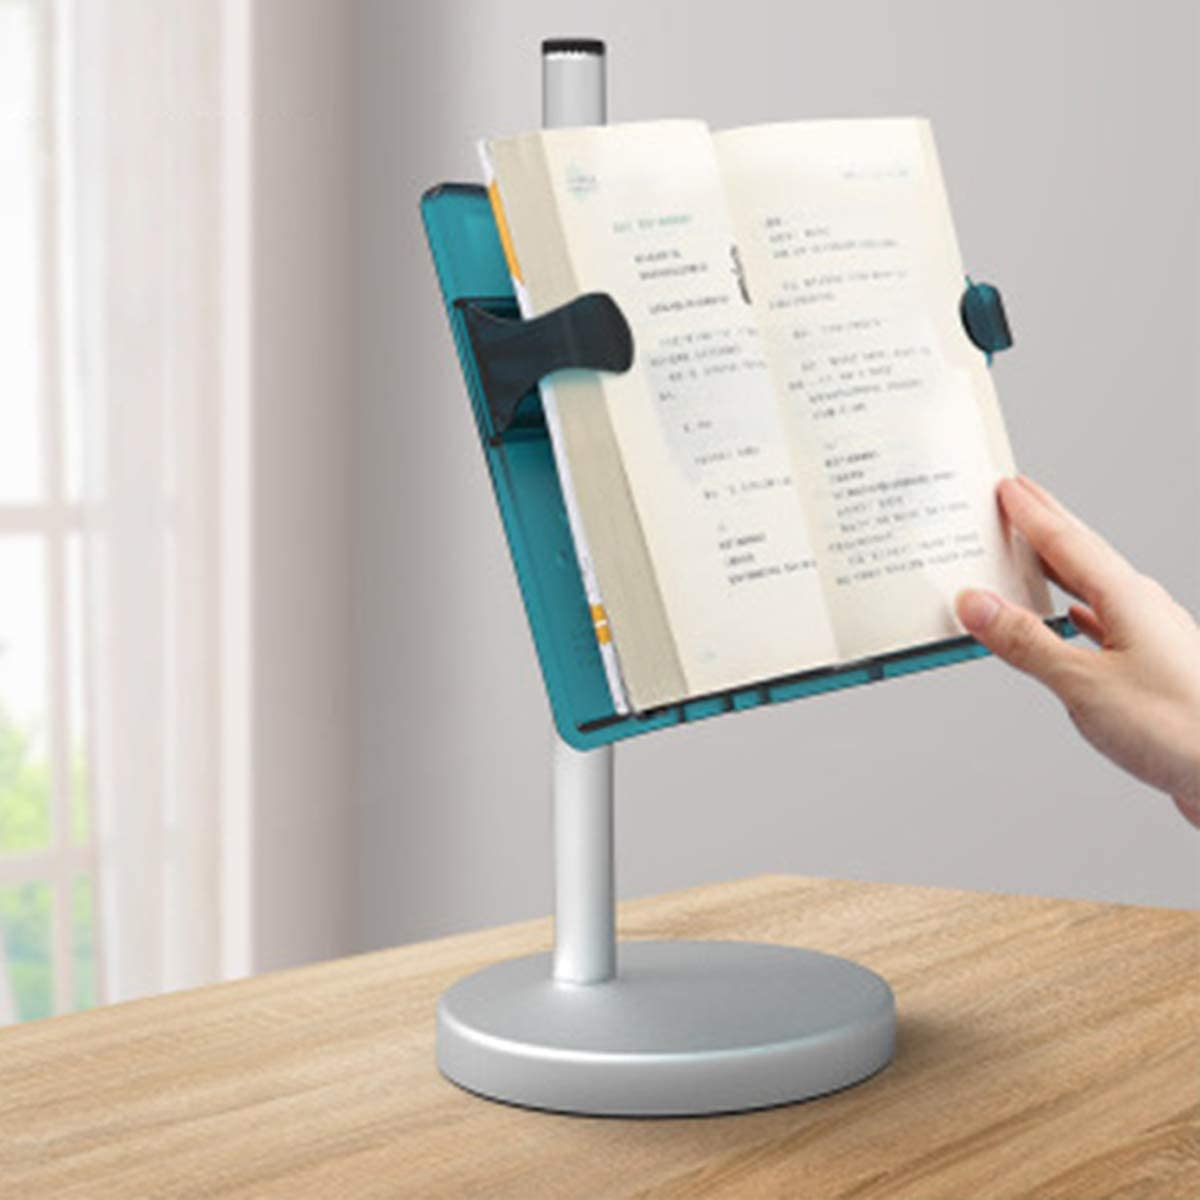 Magazines CookBooks Paperbacks Hands Free Book Stand Flexible Folding Document Holder Adjustable Reading Height and Angle for Hard Covers TextBooks